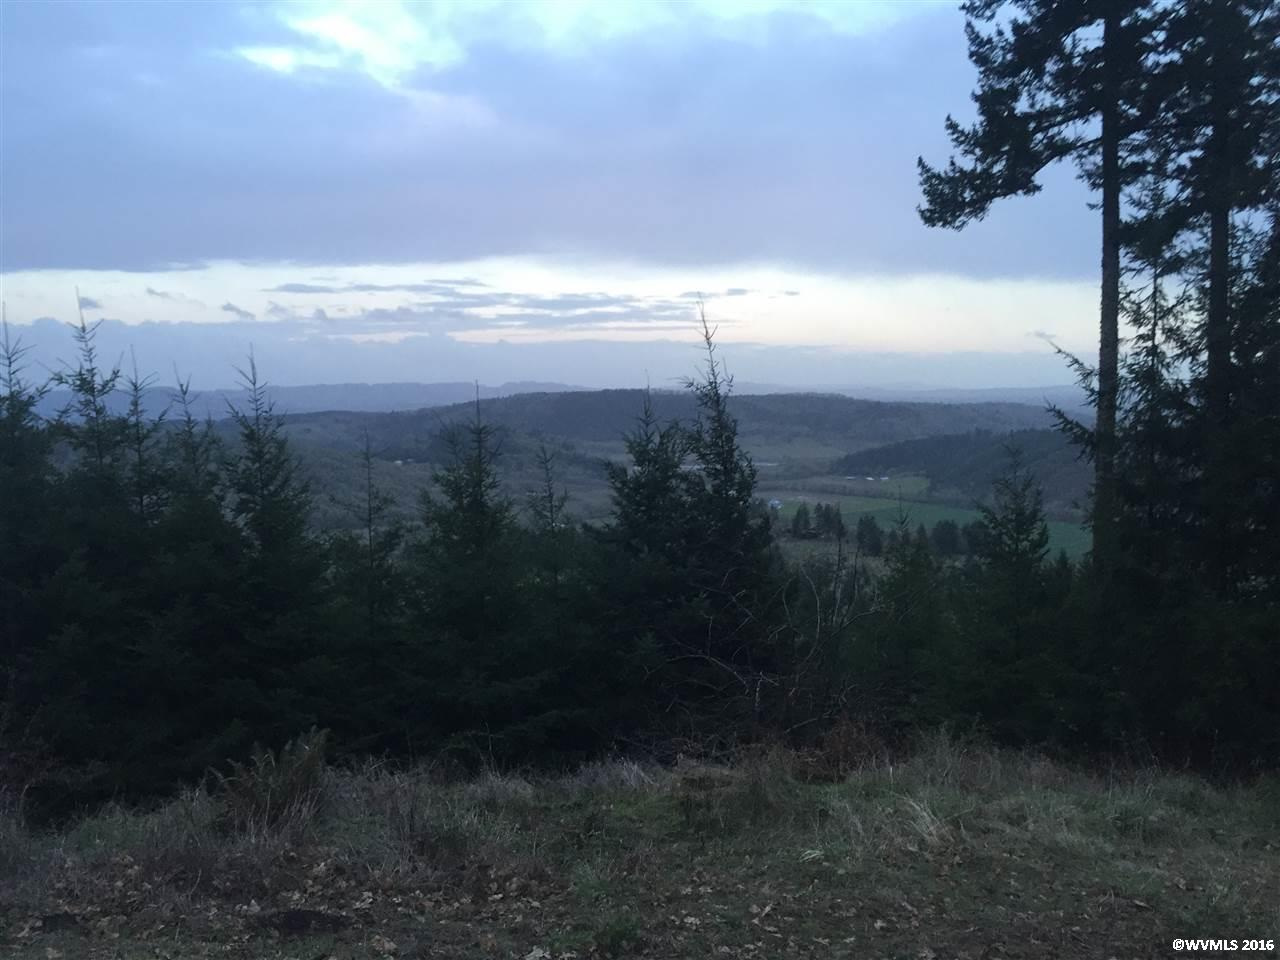 Image of Acreage for Sale near Mcminnville, Oregon, in Yamhill county: 6.62 acres